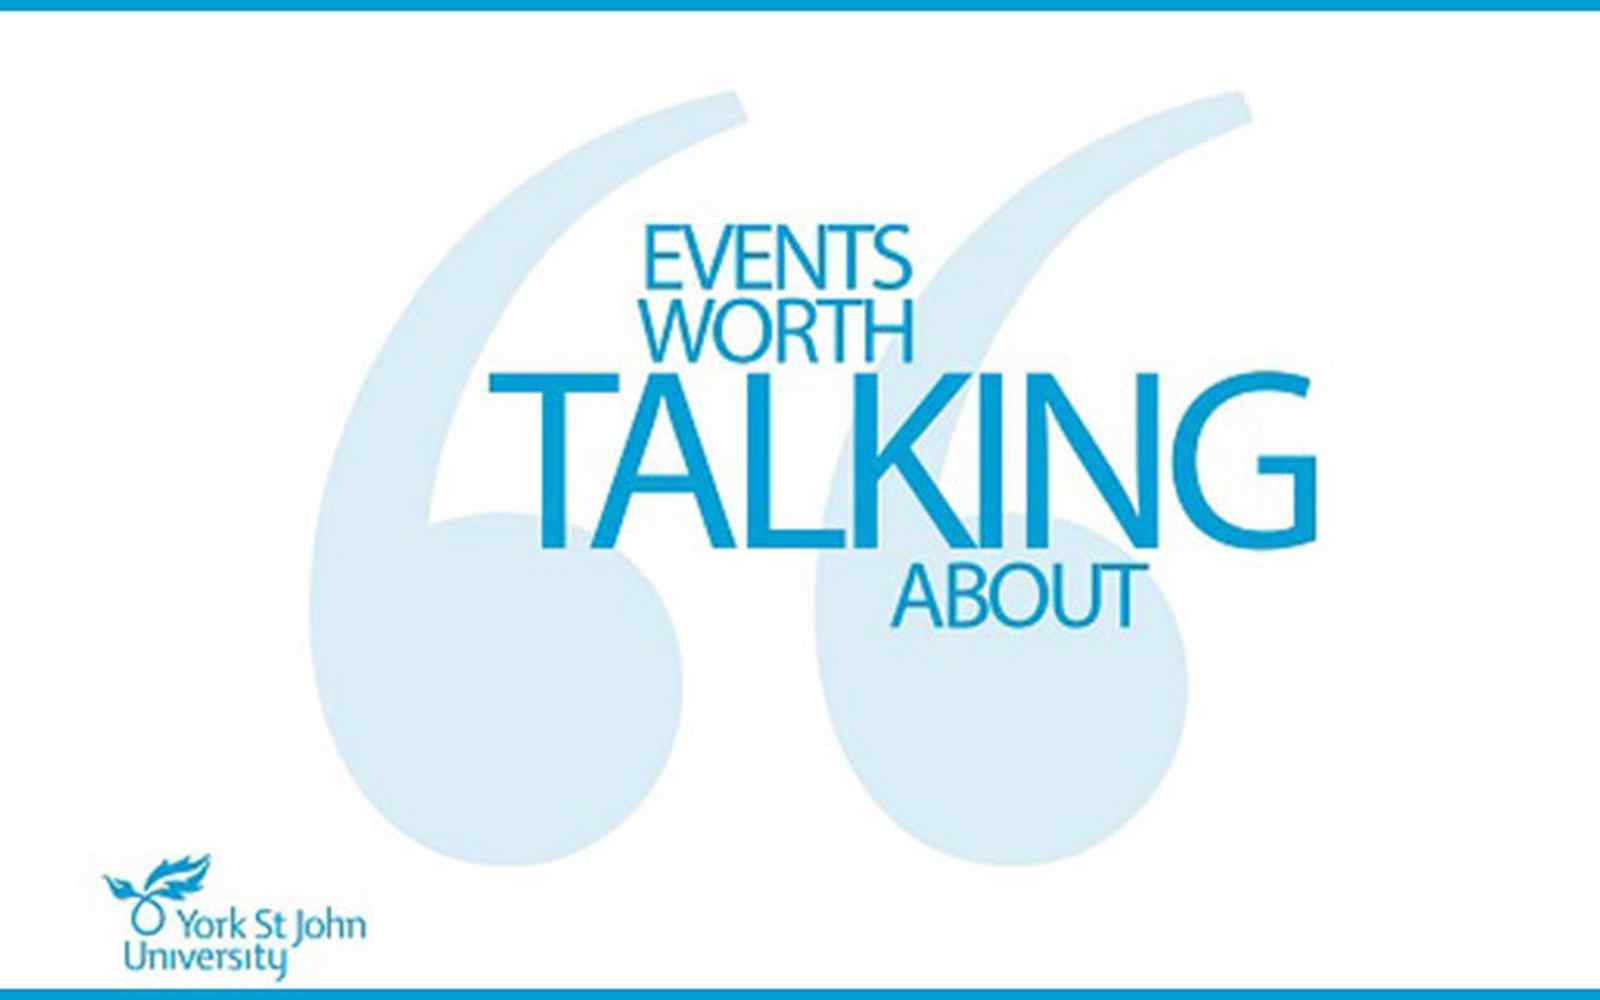 Events Worth Talking About